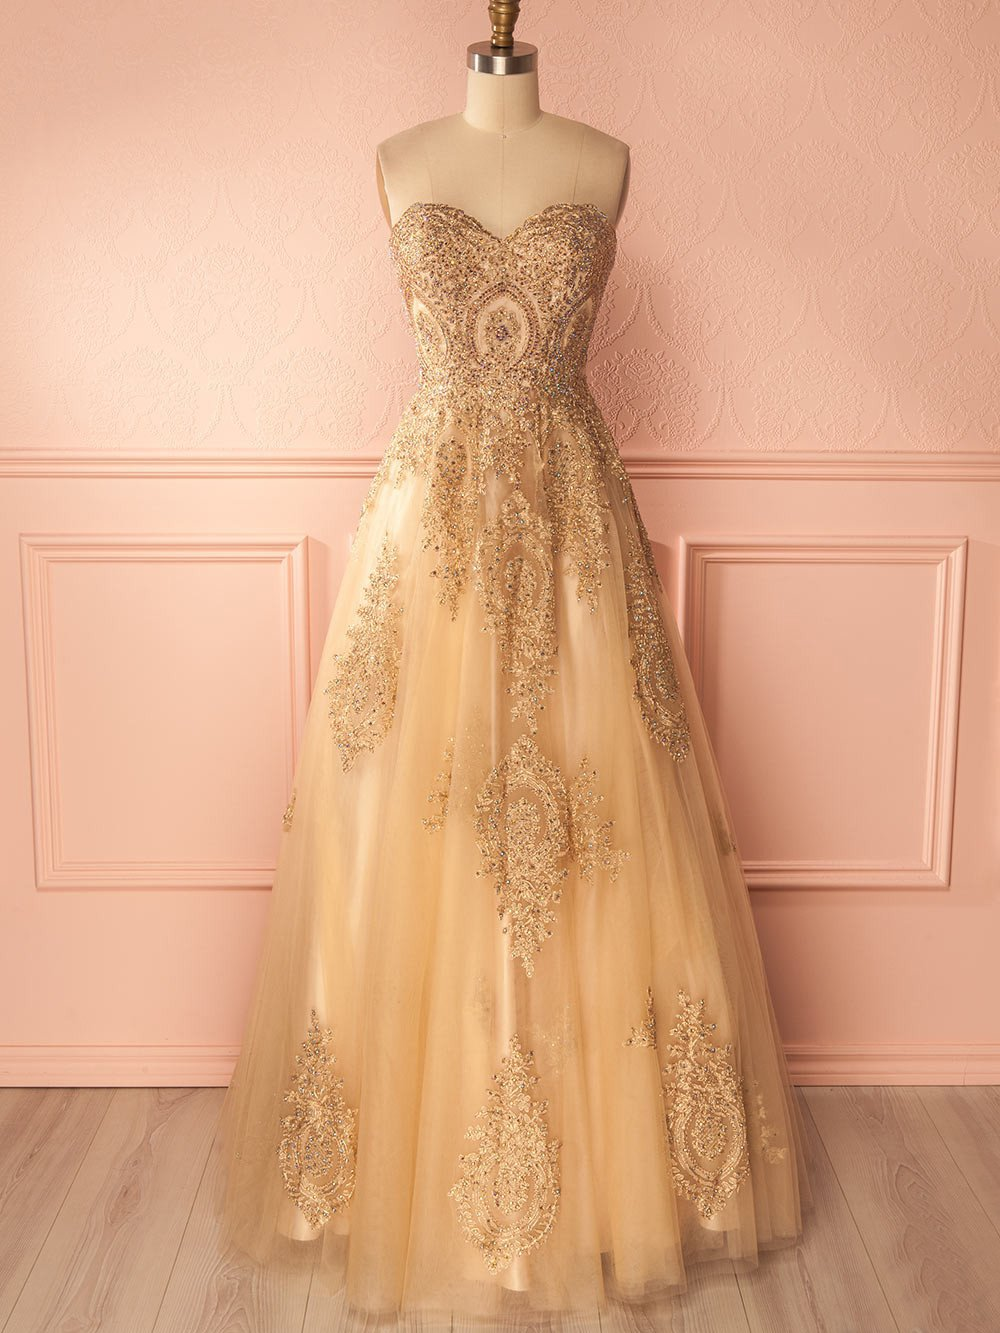 Beautiful Prom Dresses A-line Sweetheart Gold Lace-up Prom Dresses,PD4558925